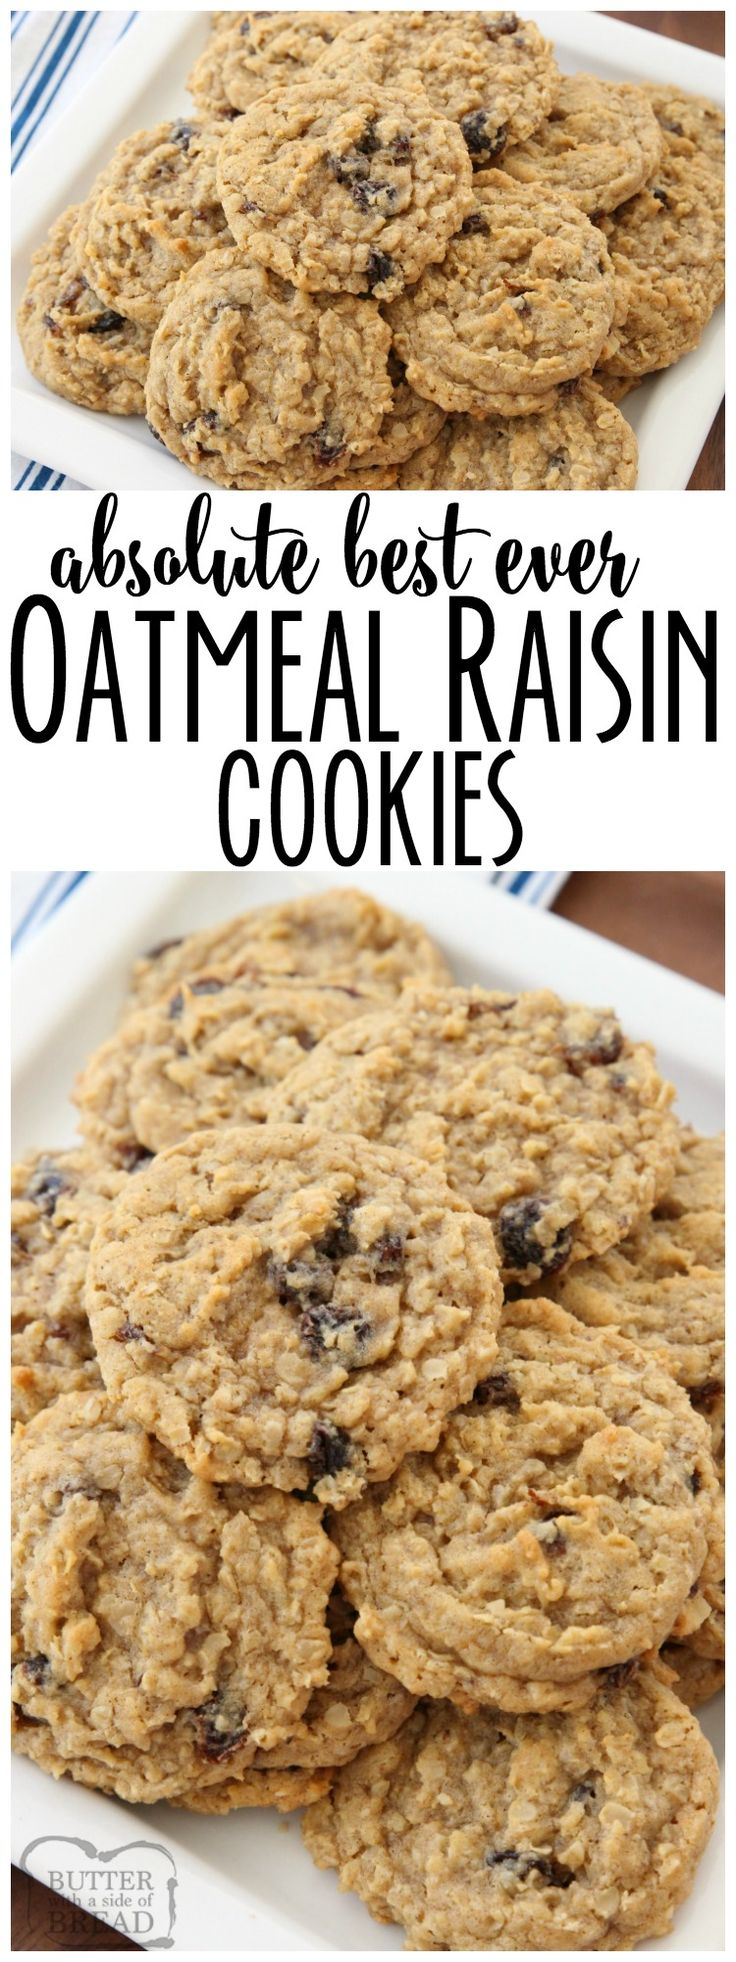 Oatmeal Raisin Cookies that truly are the BEST EVER! #Oatmeal, #raisins, pudding mix & spices combine in the most delicious, soft & chewy Oatmeal Raisin #Cookies from Butter With A Side of Bread